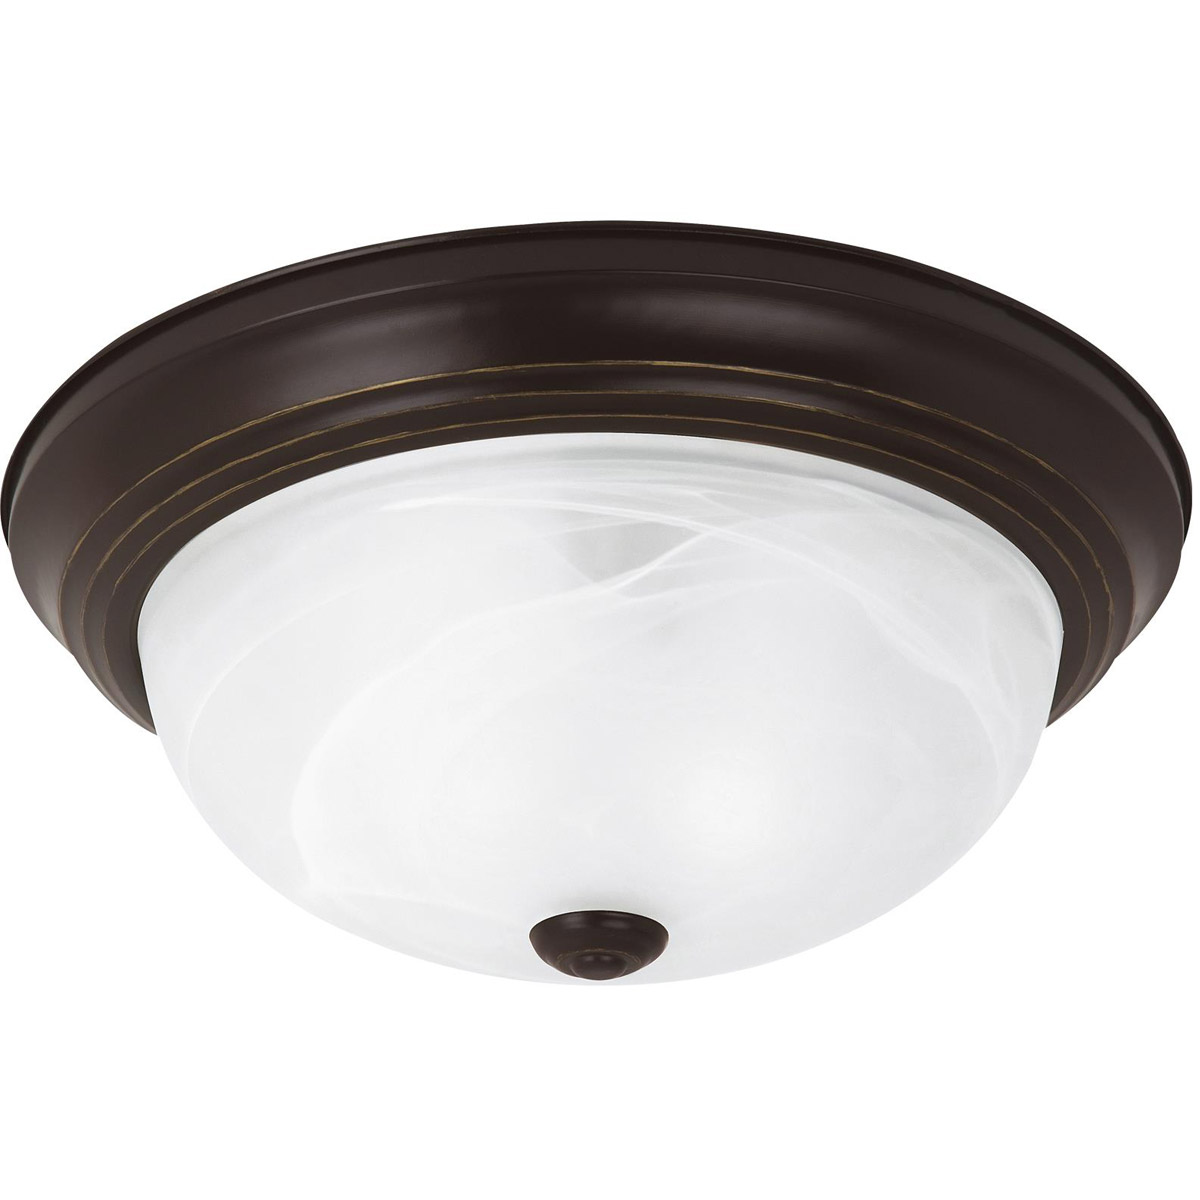 Sea Gull Lighting Windgate 2 Light Flush Mount in Heirloom Bronze 75942-782